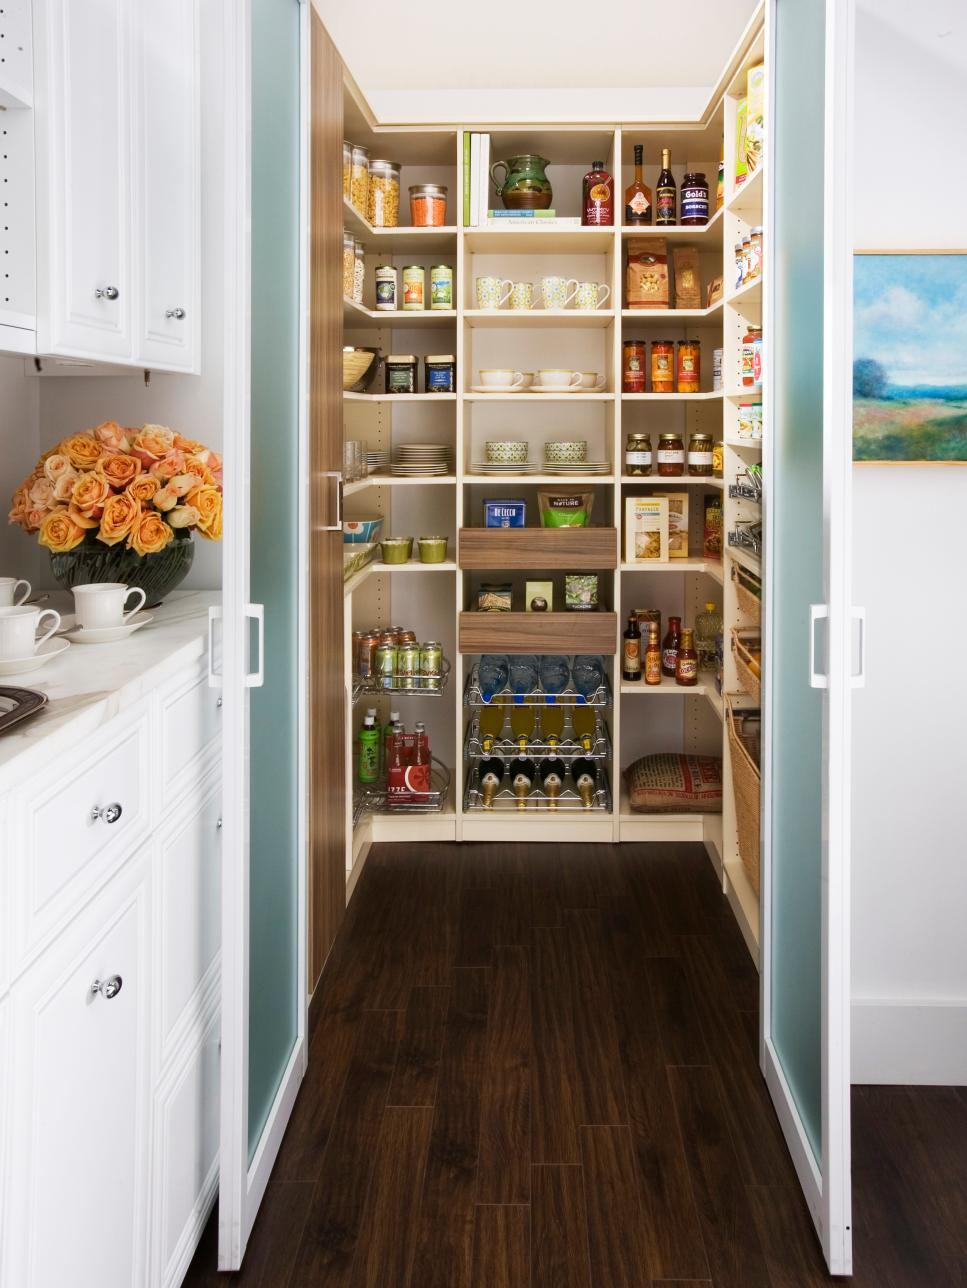 Amazing Kitchen Storage Ideas | HGTV kitchen cabinet shelving ideas